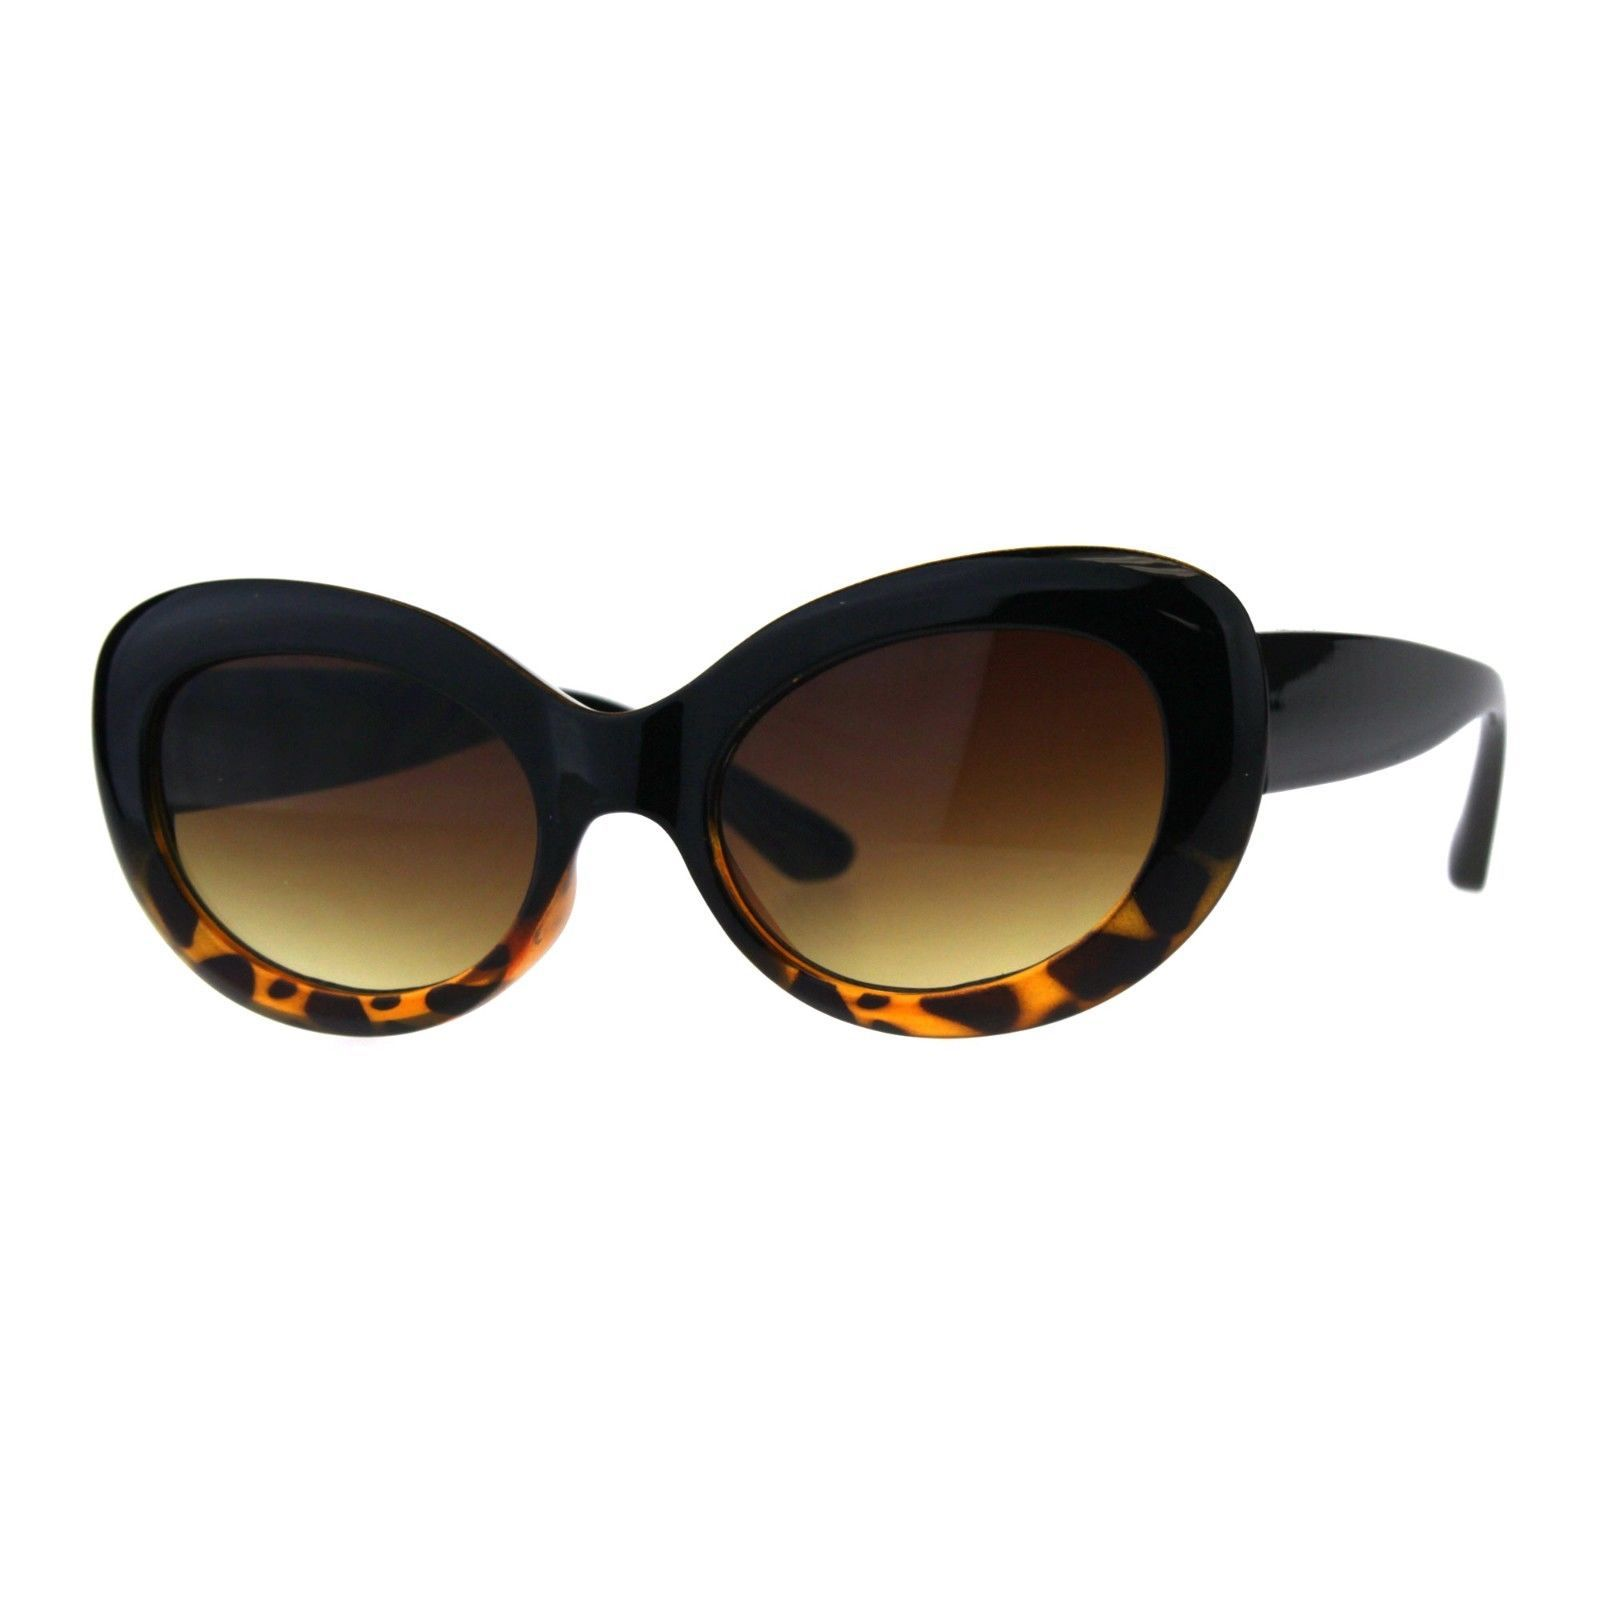 Womens Sunglasses Oval Cateye Vintage Fashion Frame UV 400